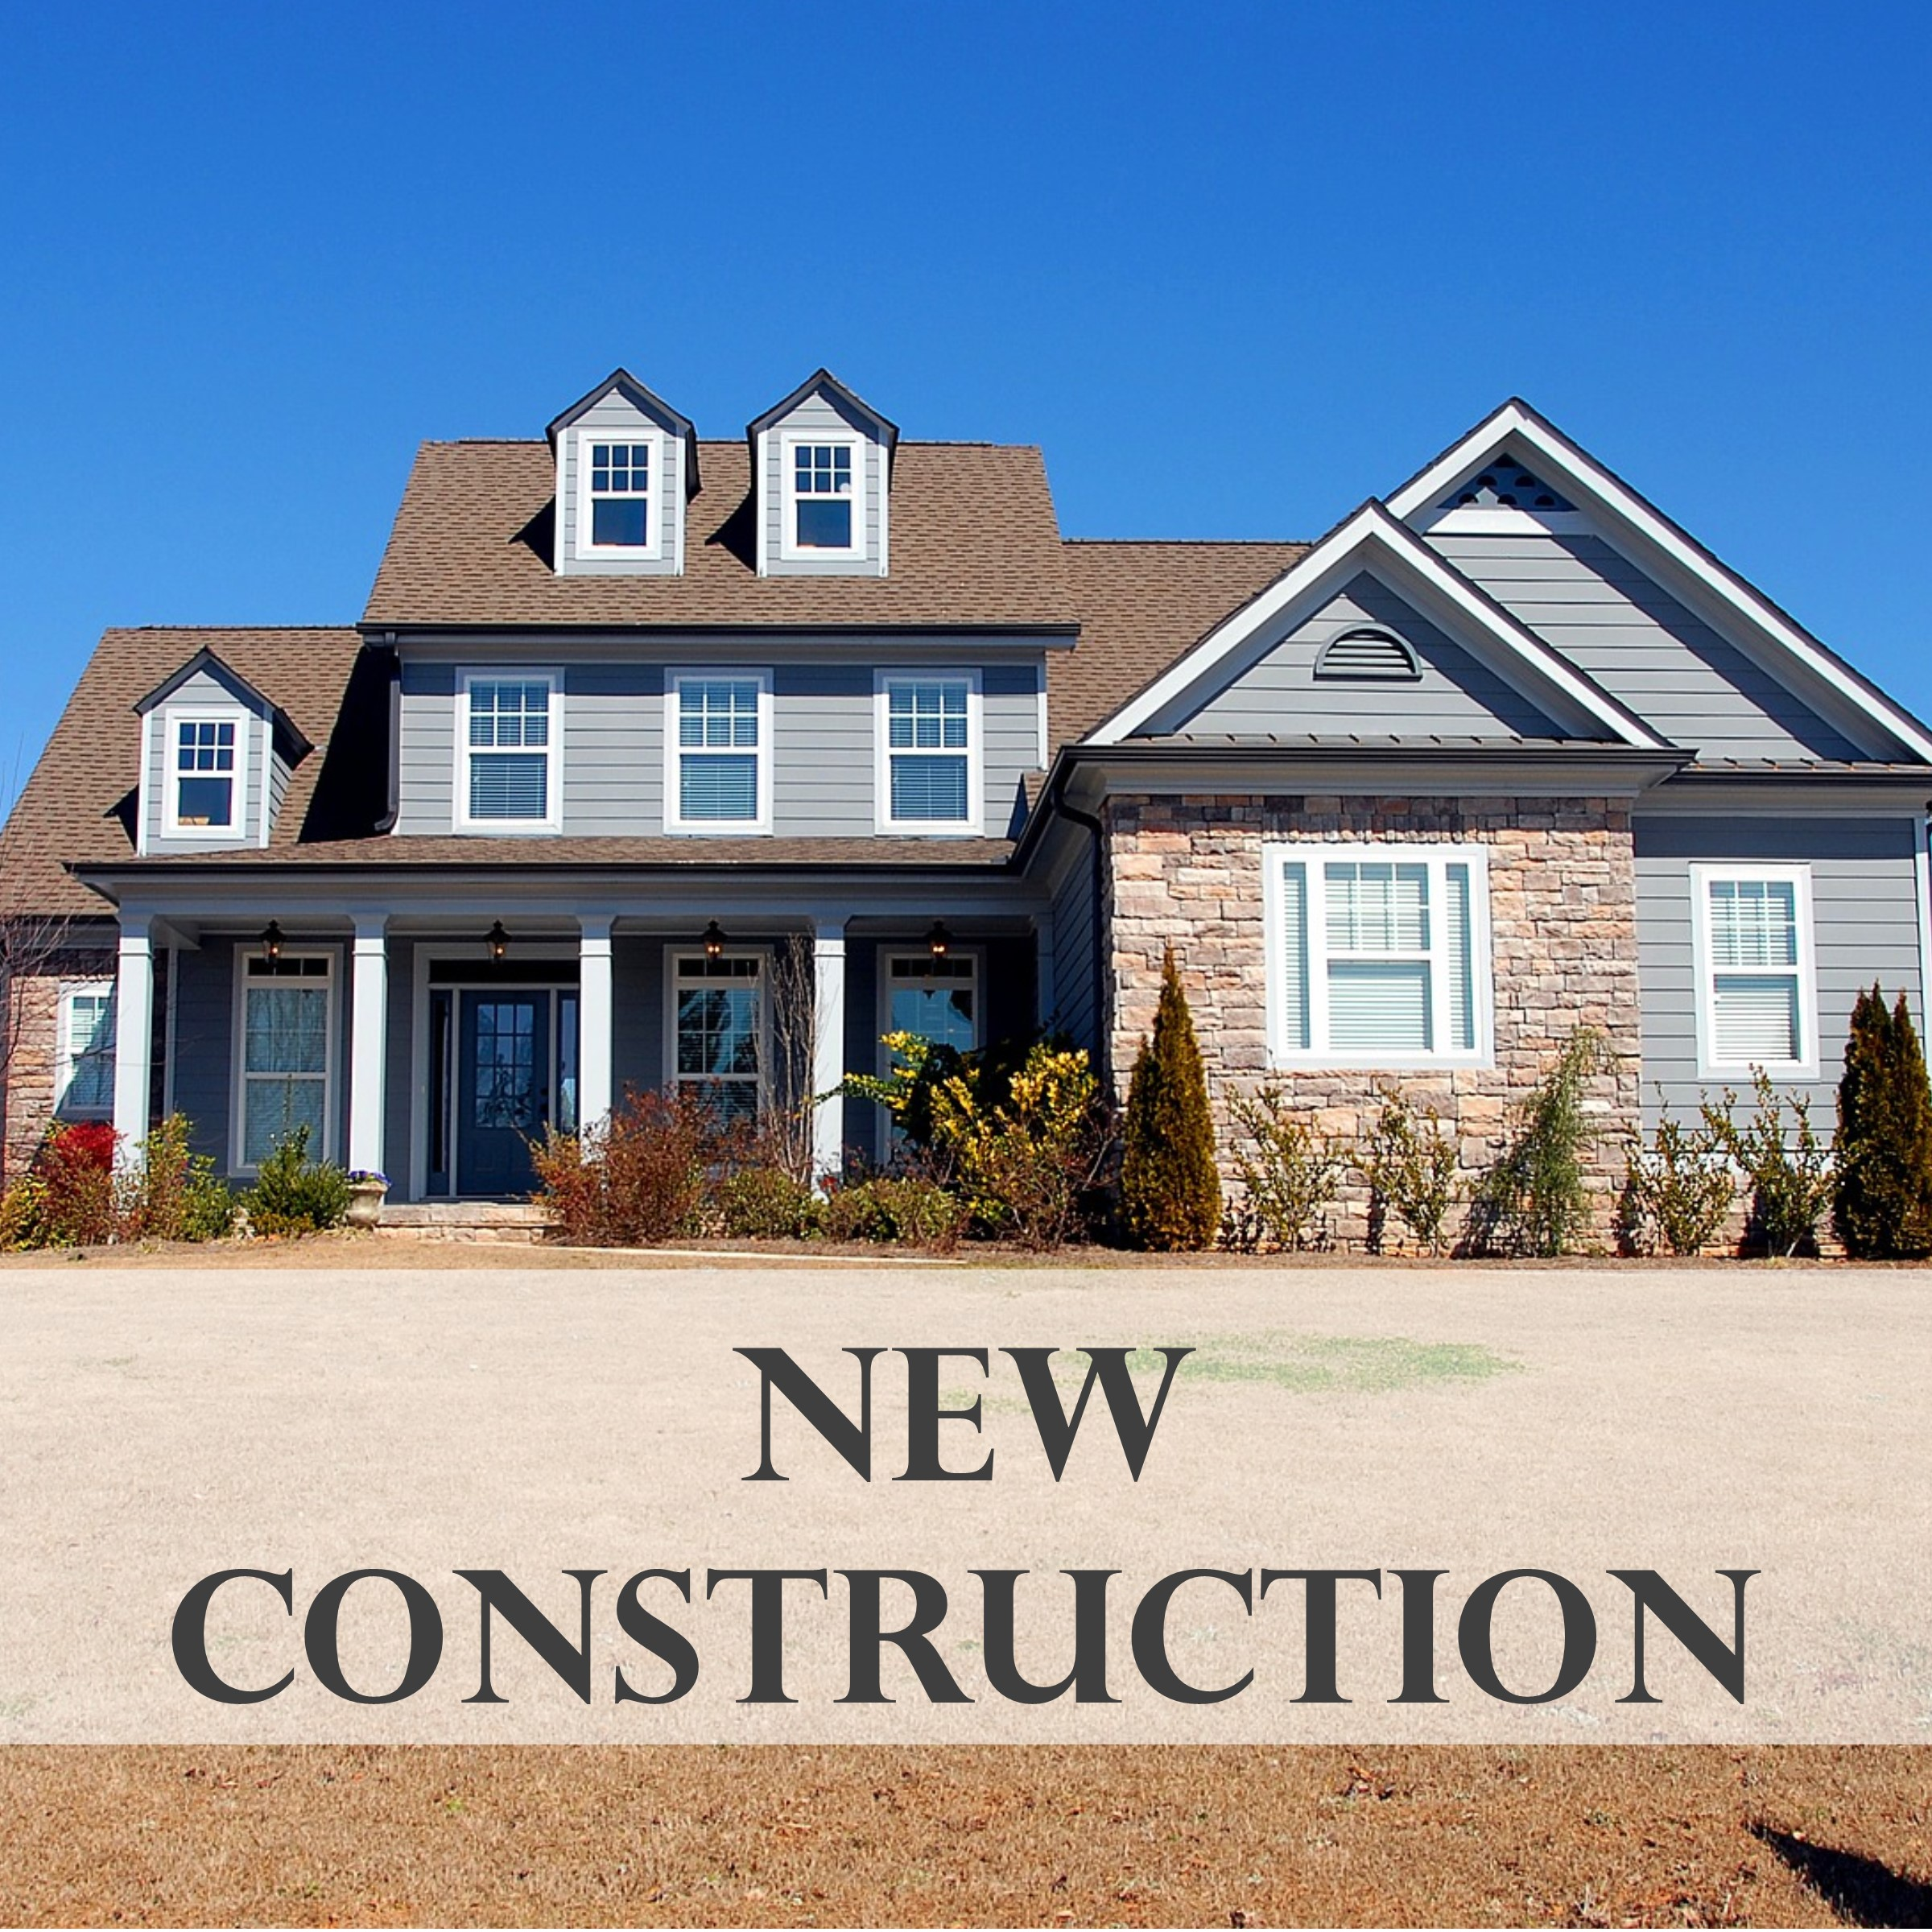 Maine New Construction - Fontaine Family - The Real Estate Leader - real estate leader, maine homes for sale, maine real estate,